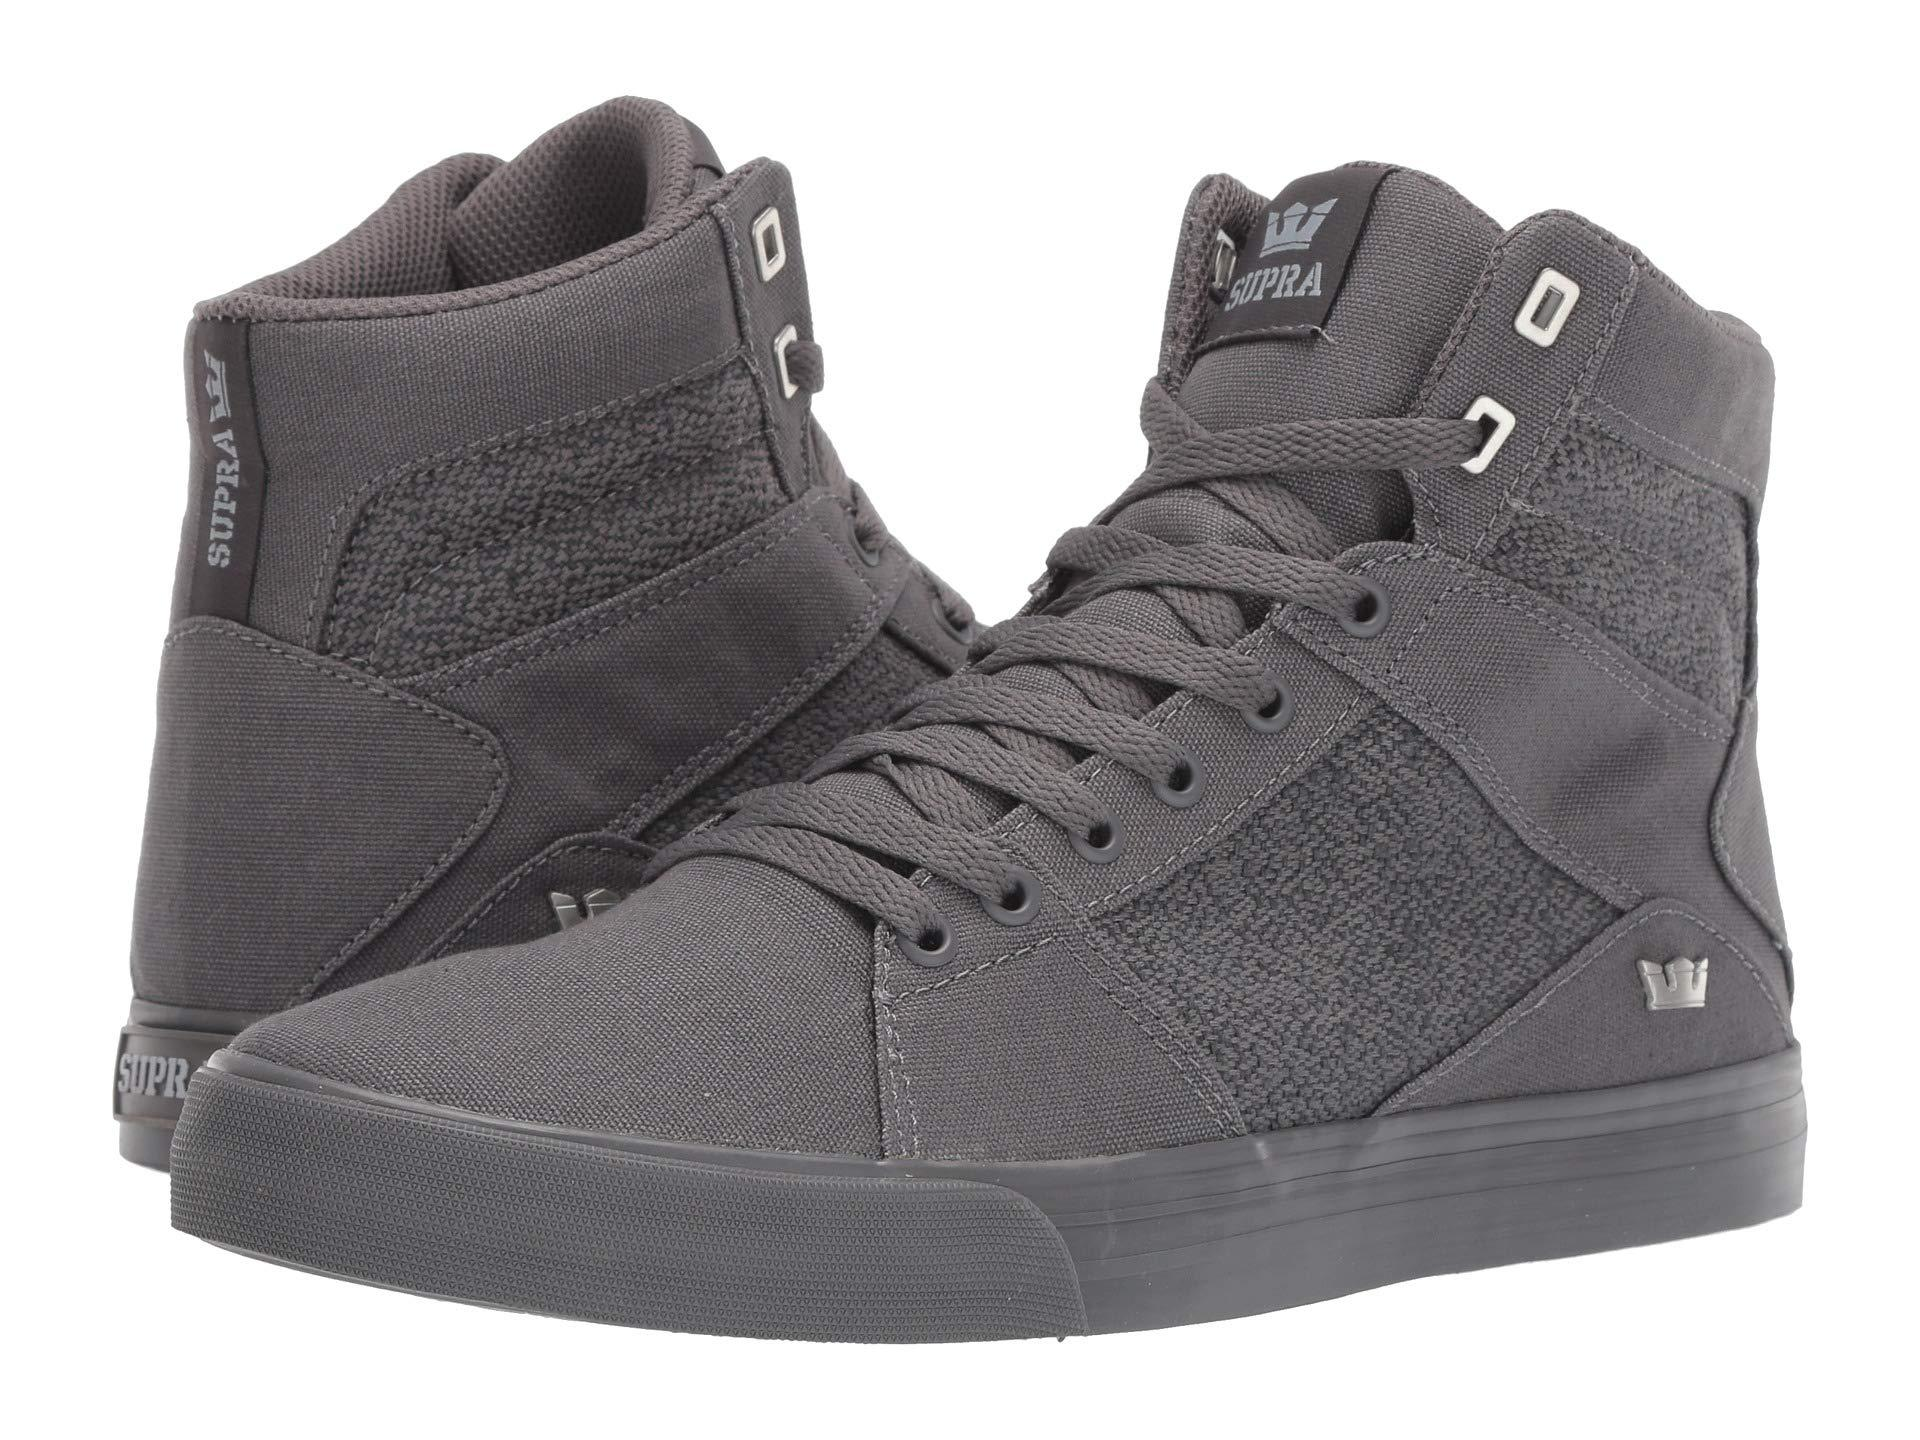 6233ed7a9e9a Lyst - Supra Aluminum (caution white) Men s Skate Shoes in Gray for Men